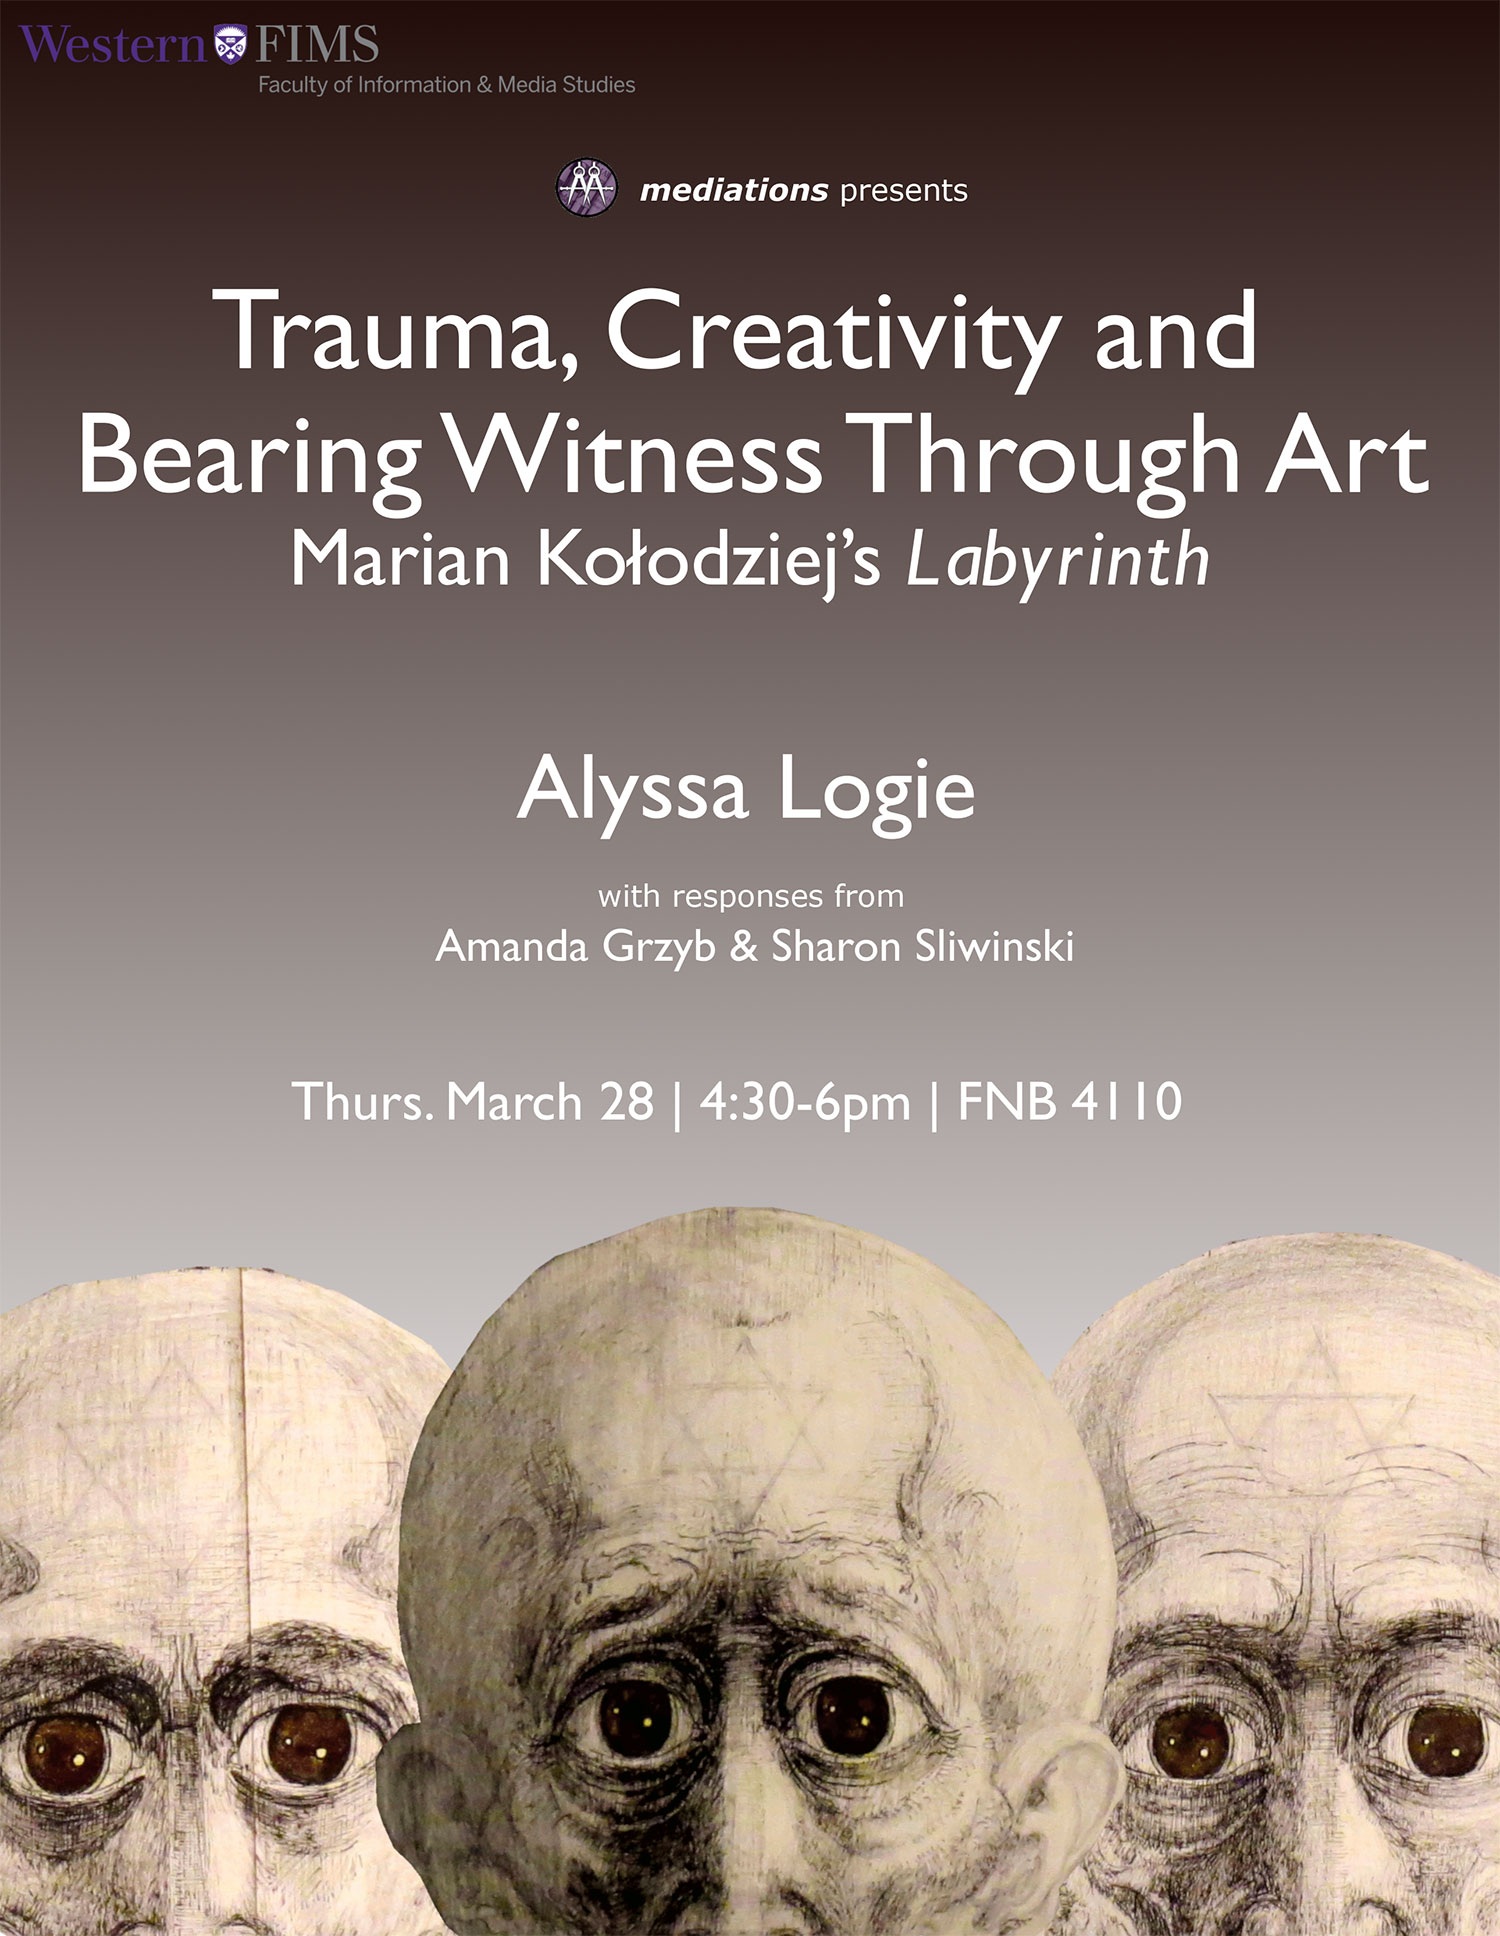 Trauma, Creativity and Bearing Witness Through Art